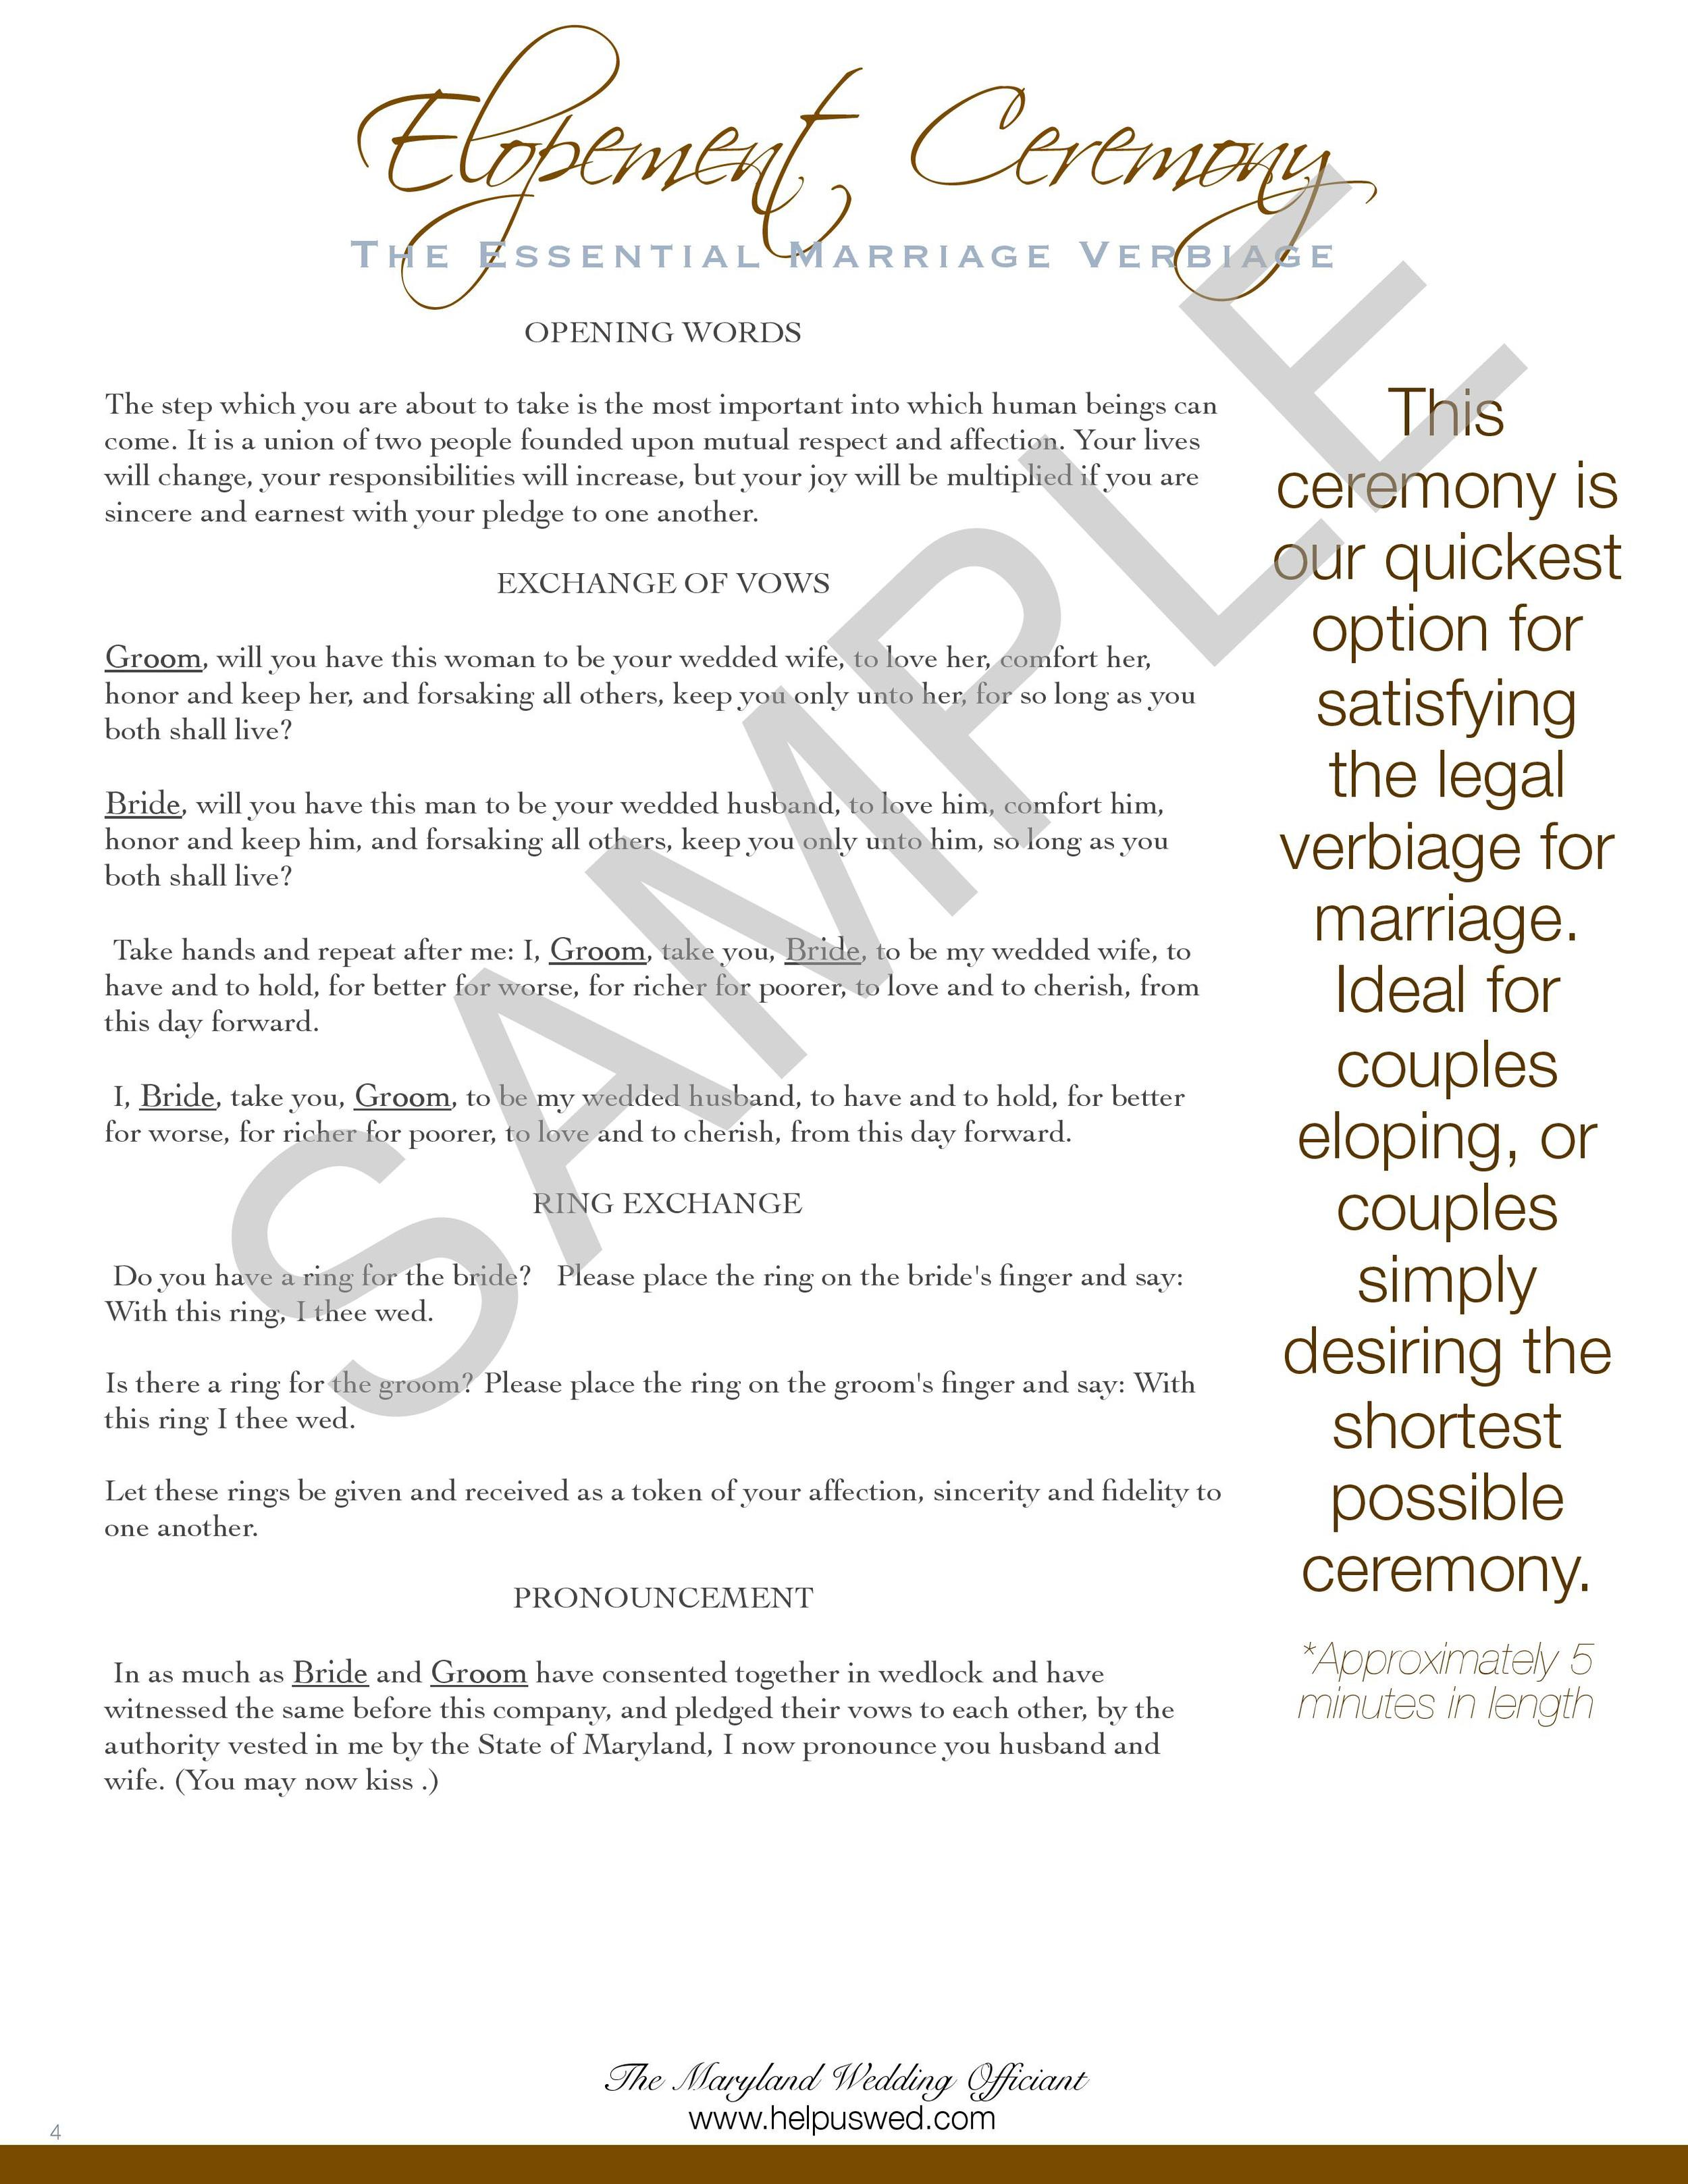 Ceremony Templates Sneak Peek-page-004.jpg